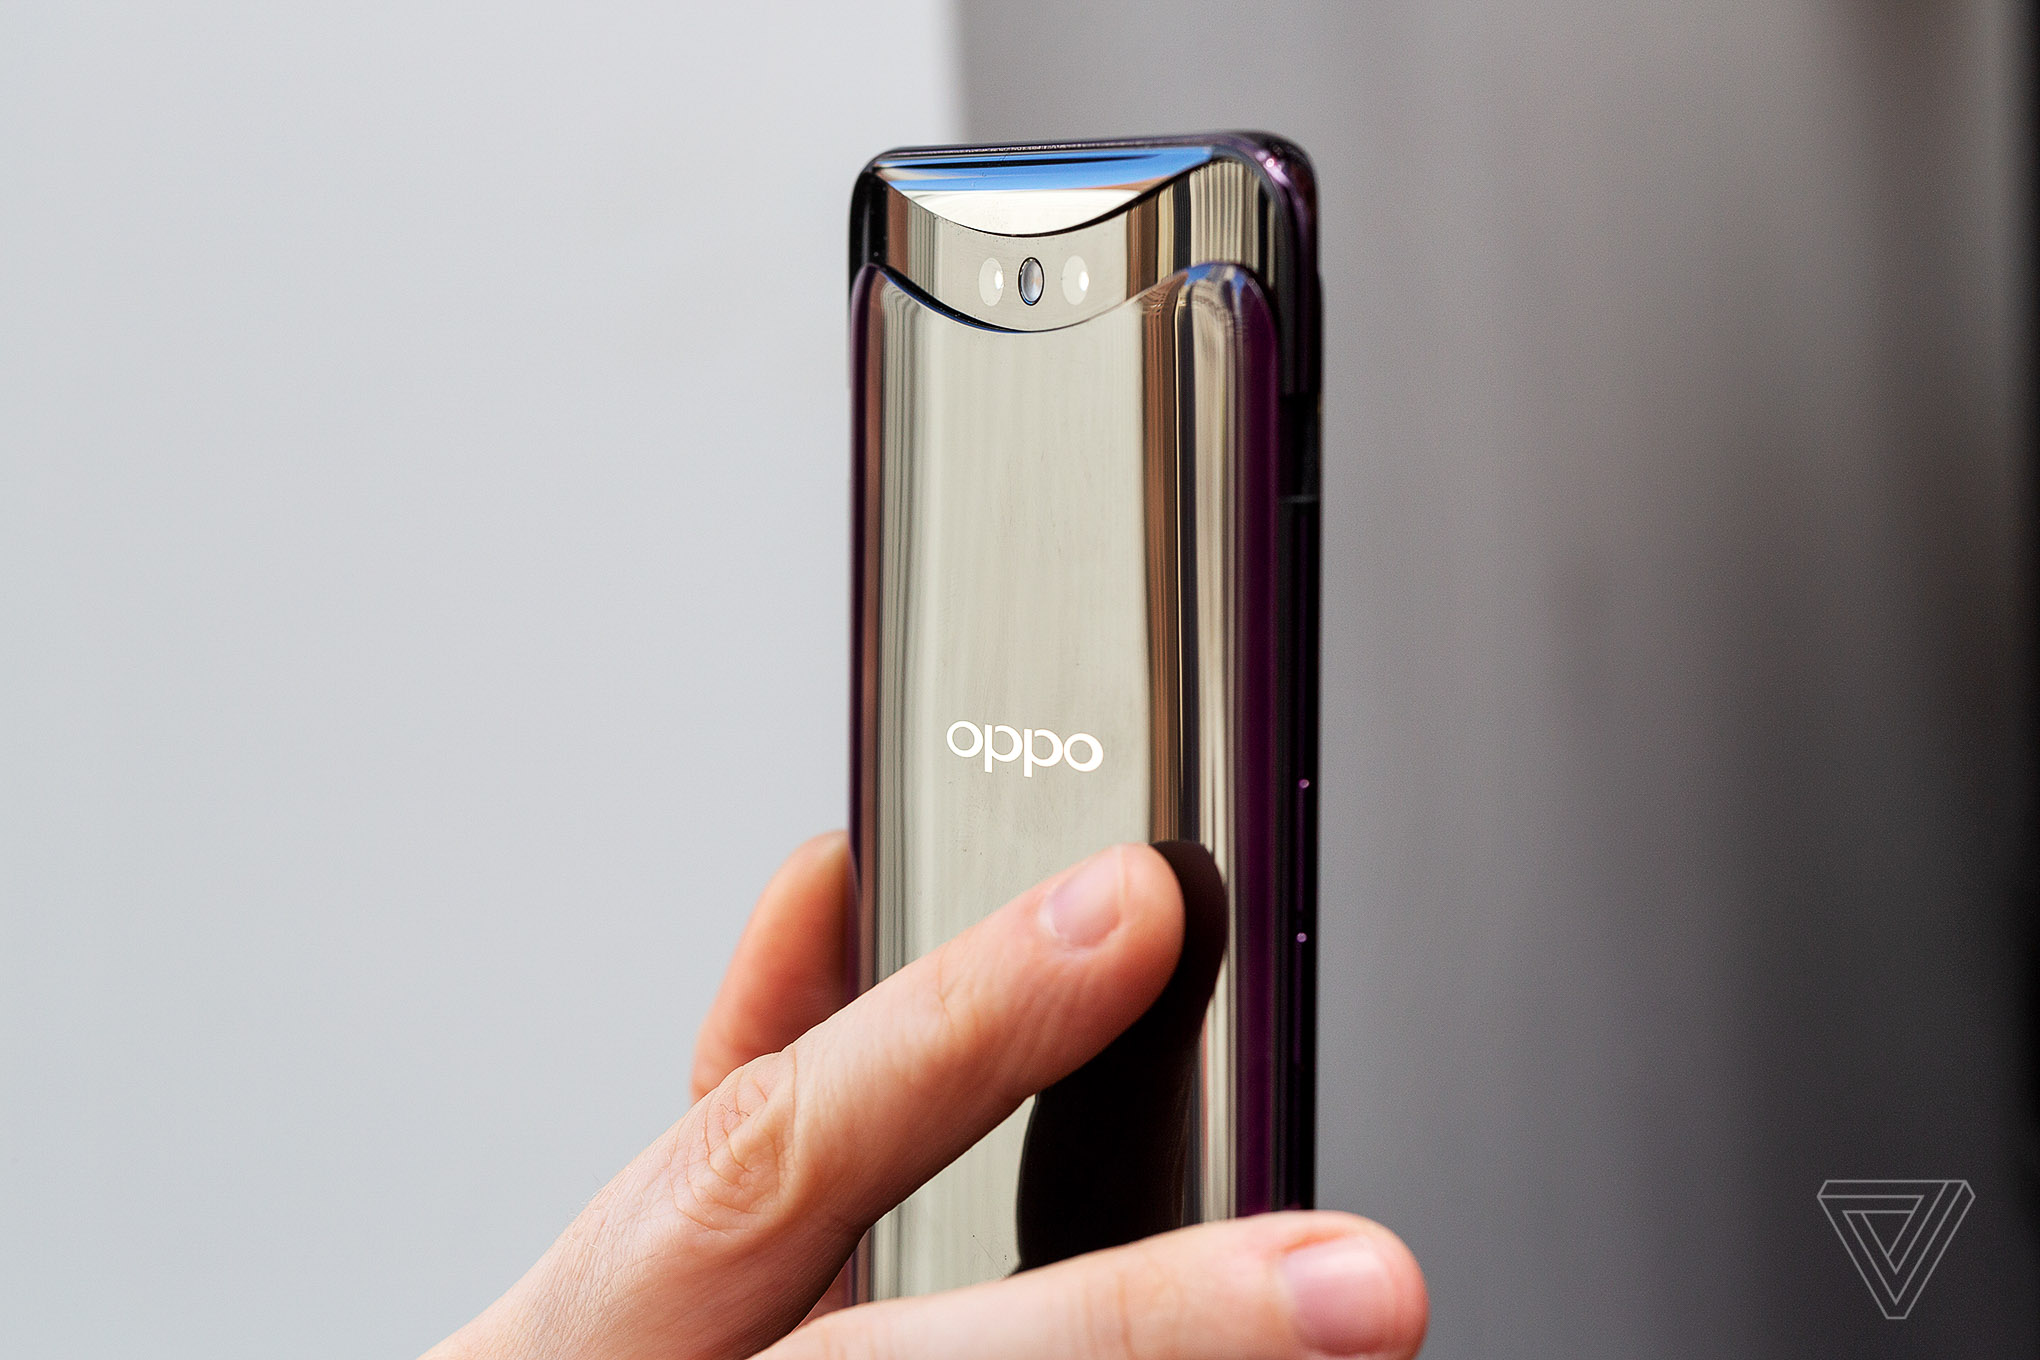 Oppo's Find X ditches the notch for pop-up cameras - The Verge